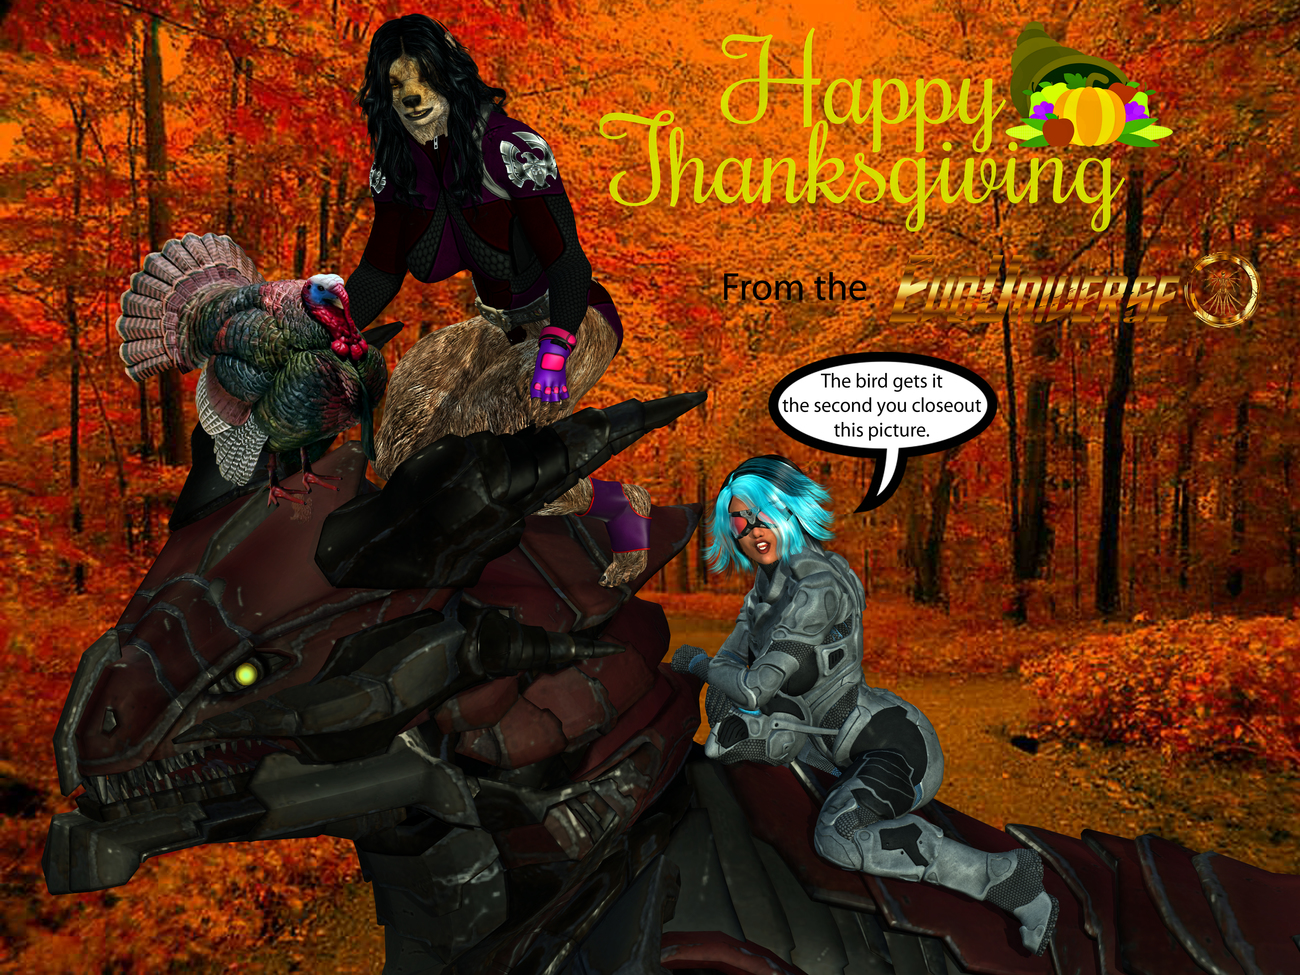 HAPPY THANKSGIVING FROM THE EVO UNIVERSE